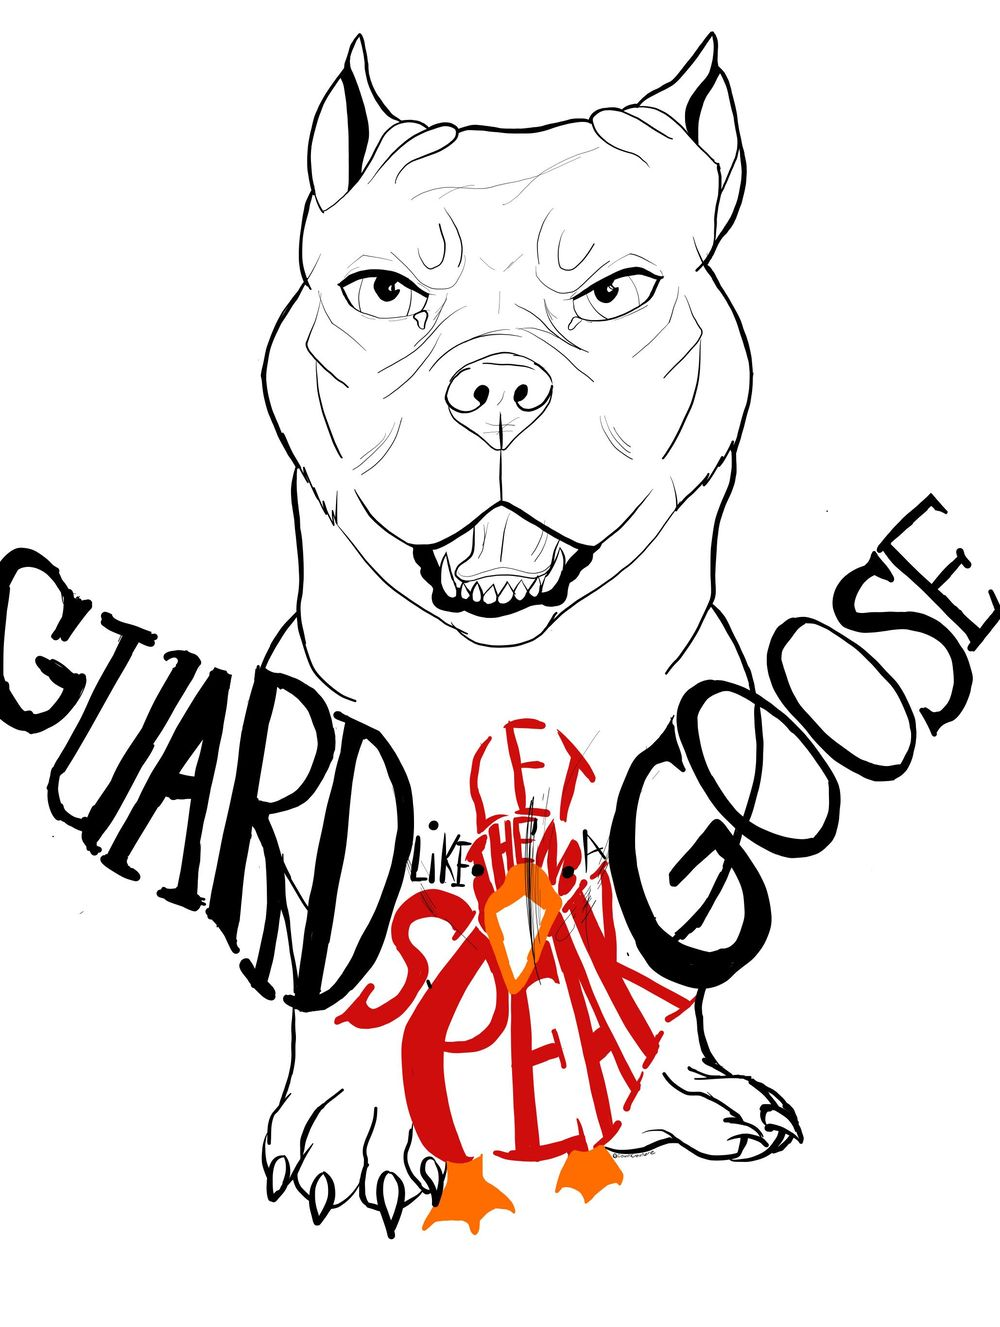 Goose Guarding - image 1 - student project